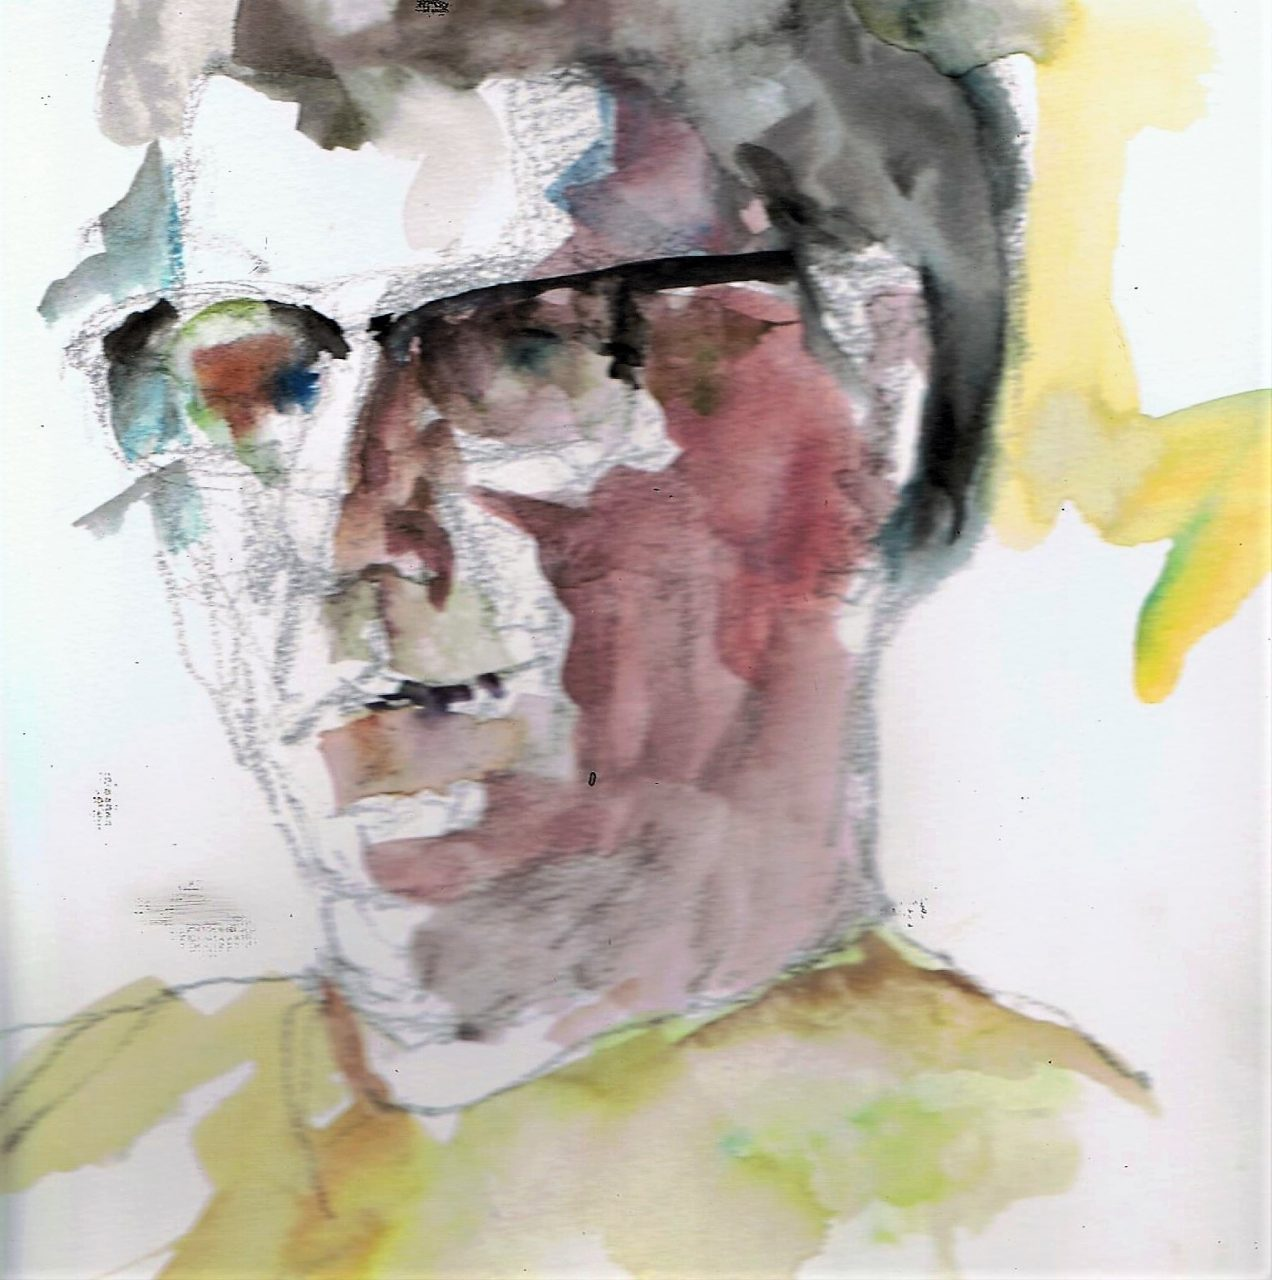 365 dagen een portret 29 Ron, model Aquarel 19c25